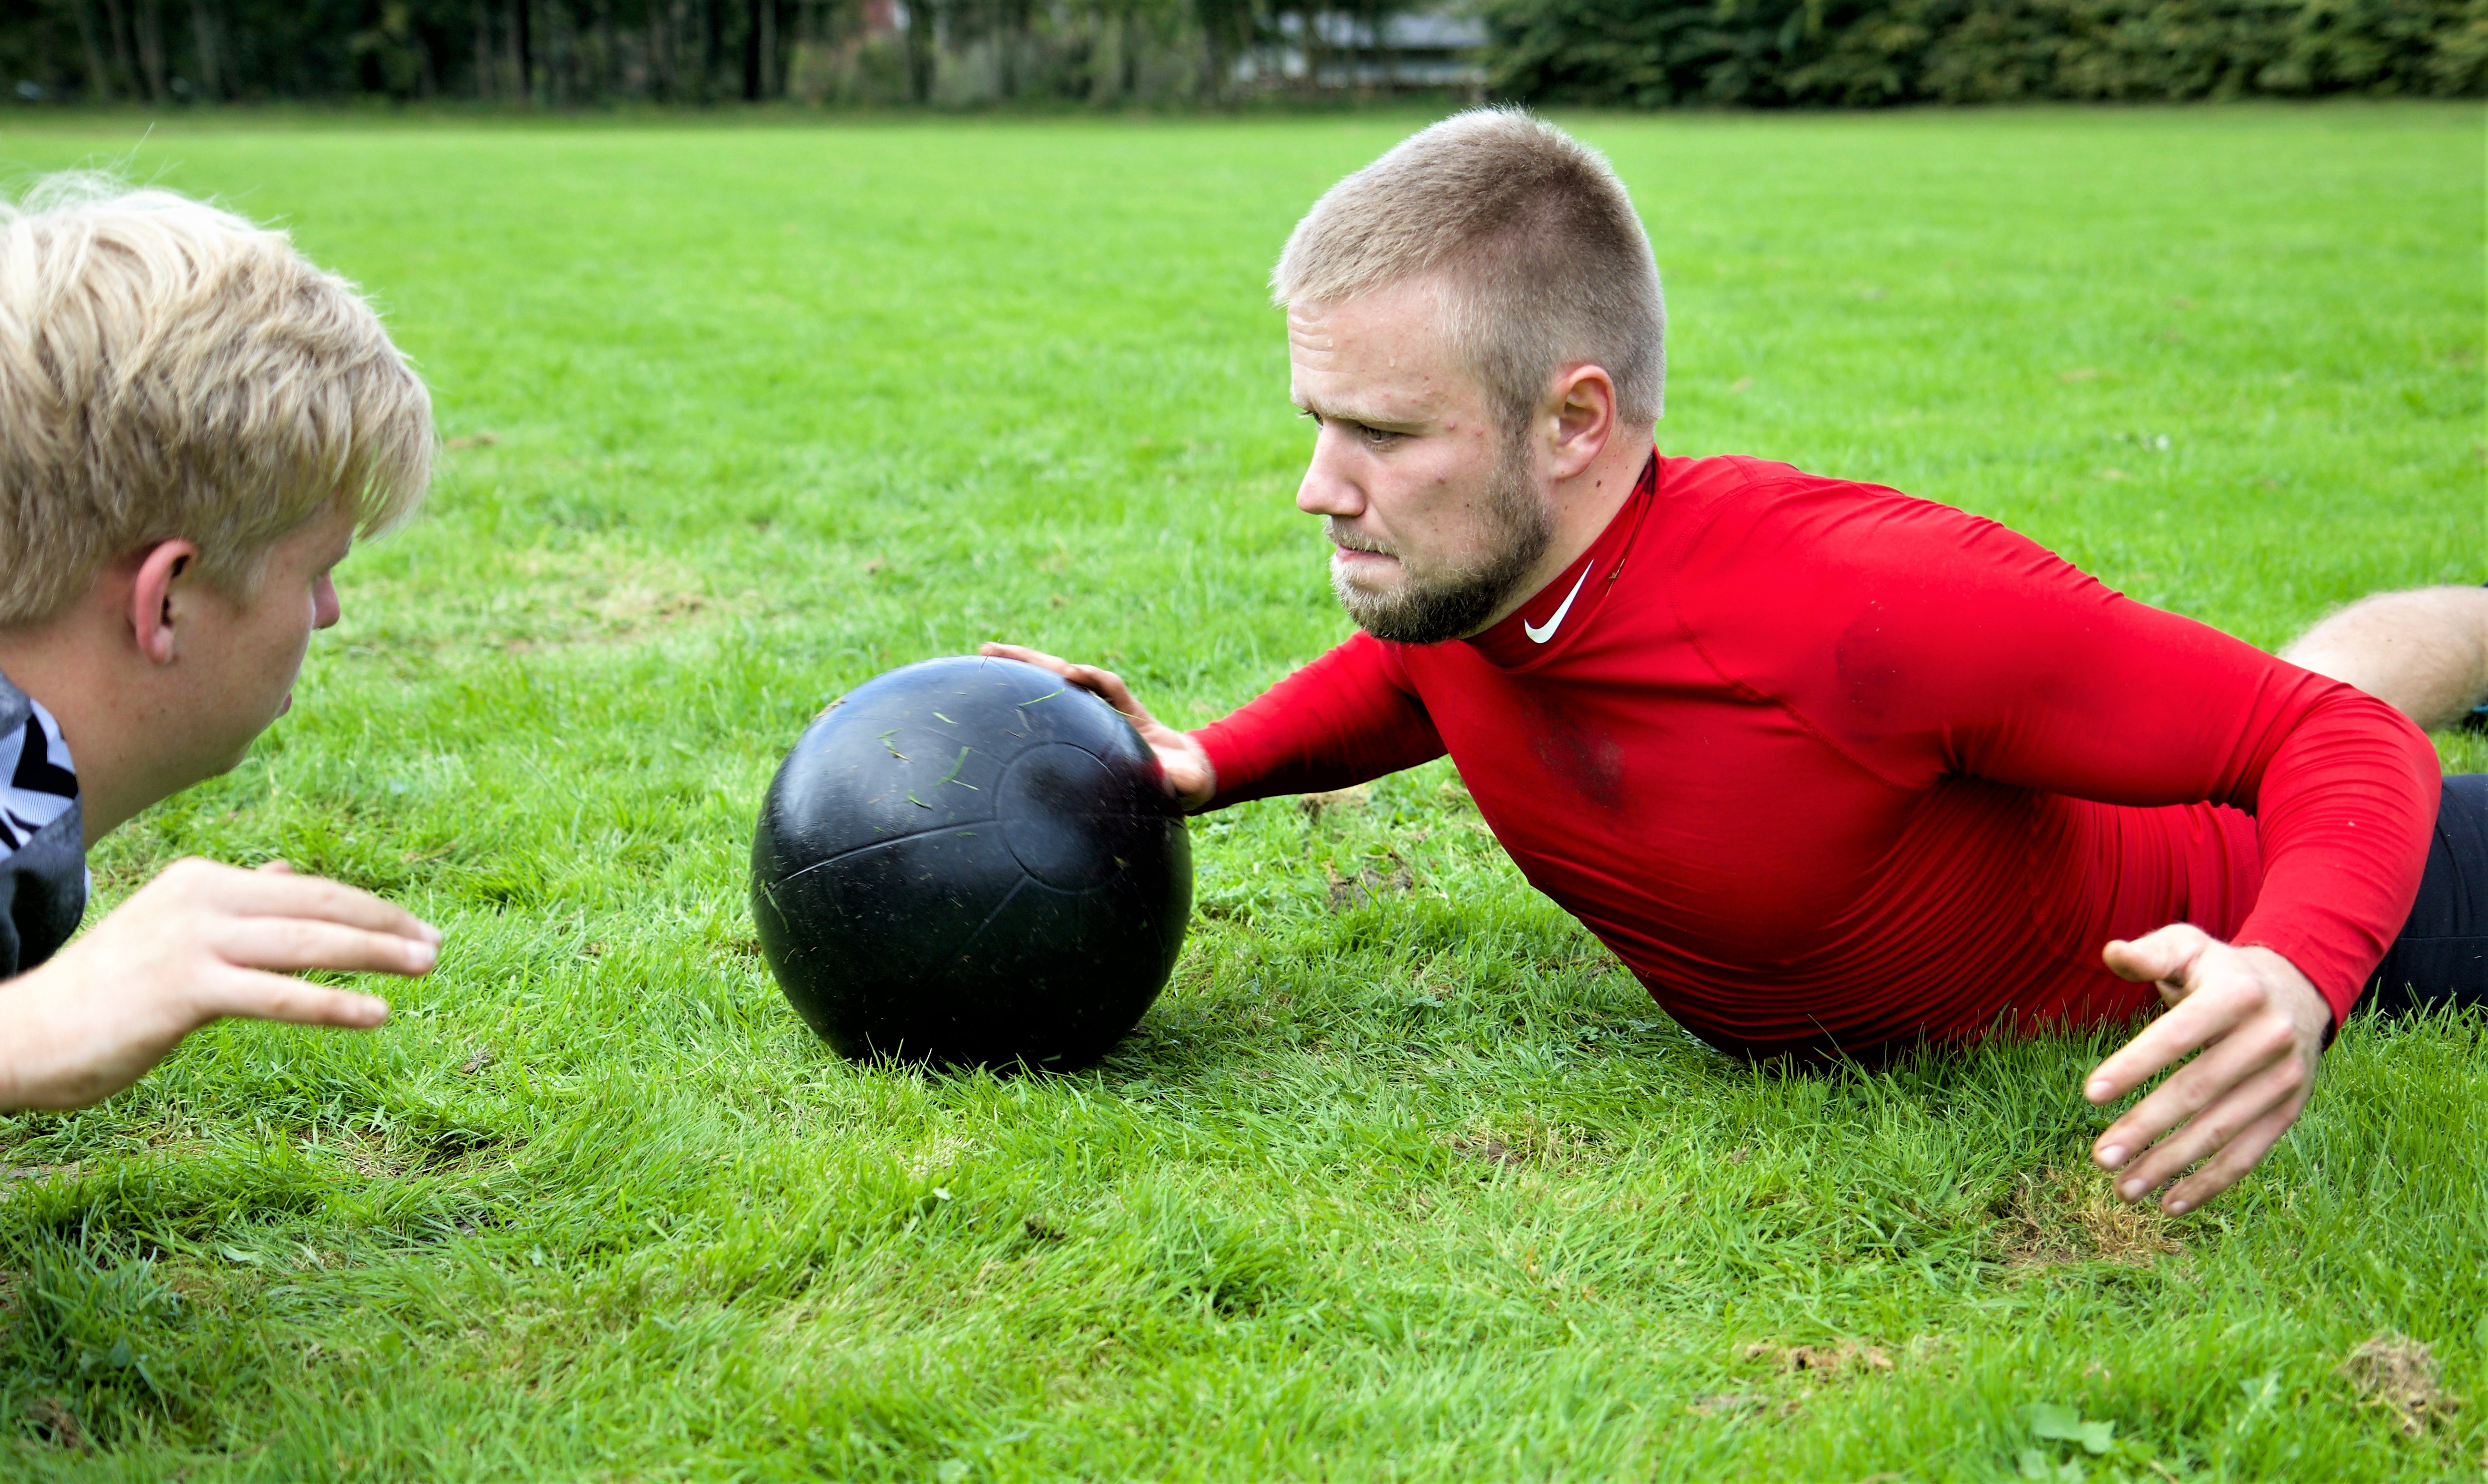 Medicin ball training